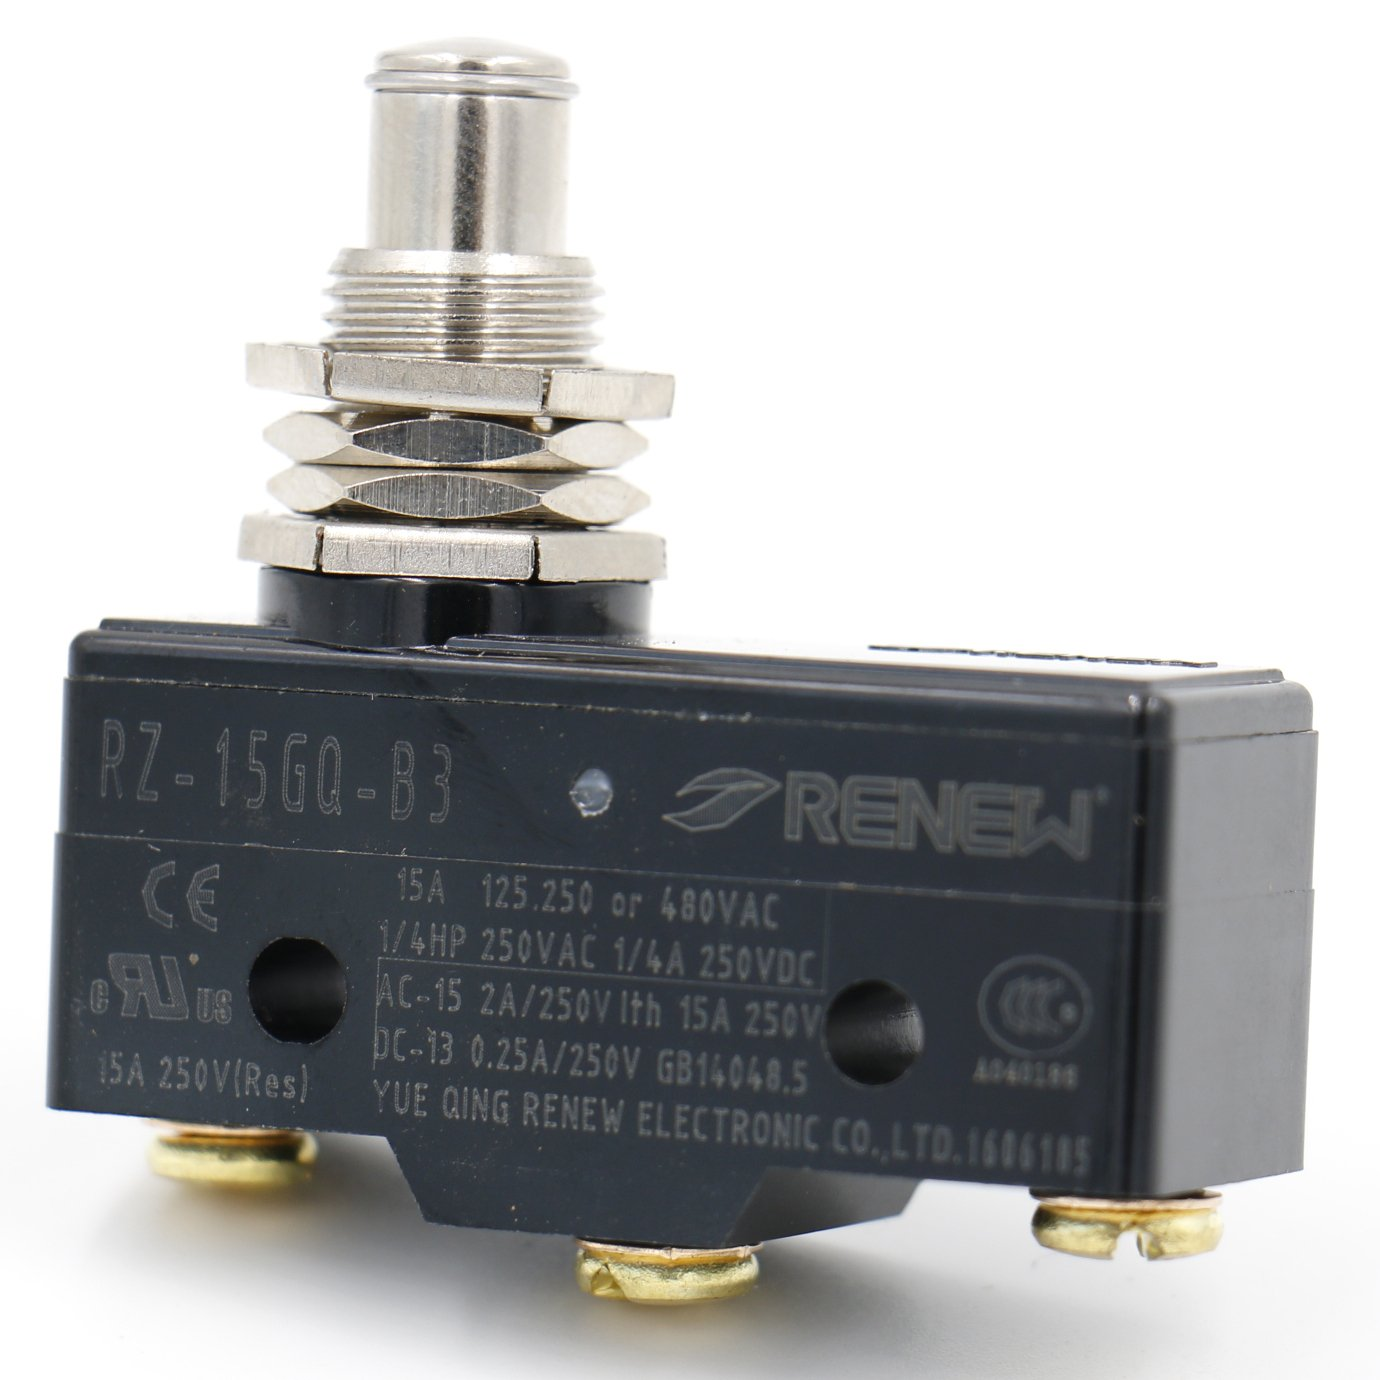 Heschen general purpose micro switch Z-15GQ-B, panel mount plunger, medium OP, 3 screw Terminal, 15A Rated Current UL listed RENEW Electronic Co.Ltd